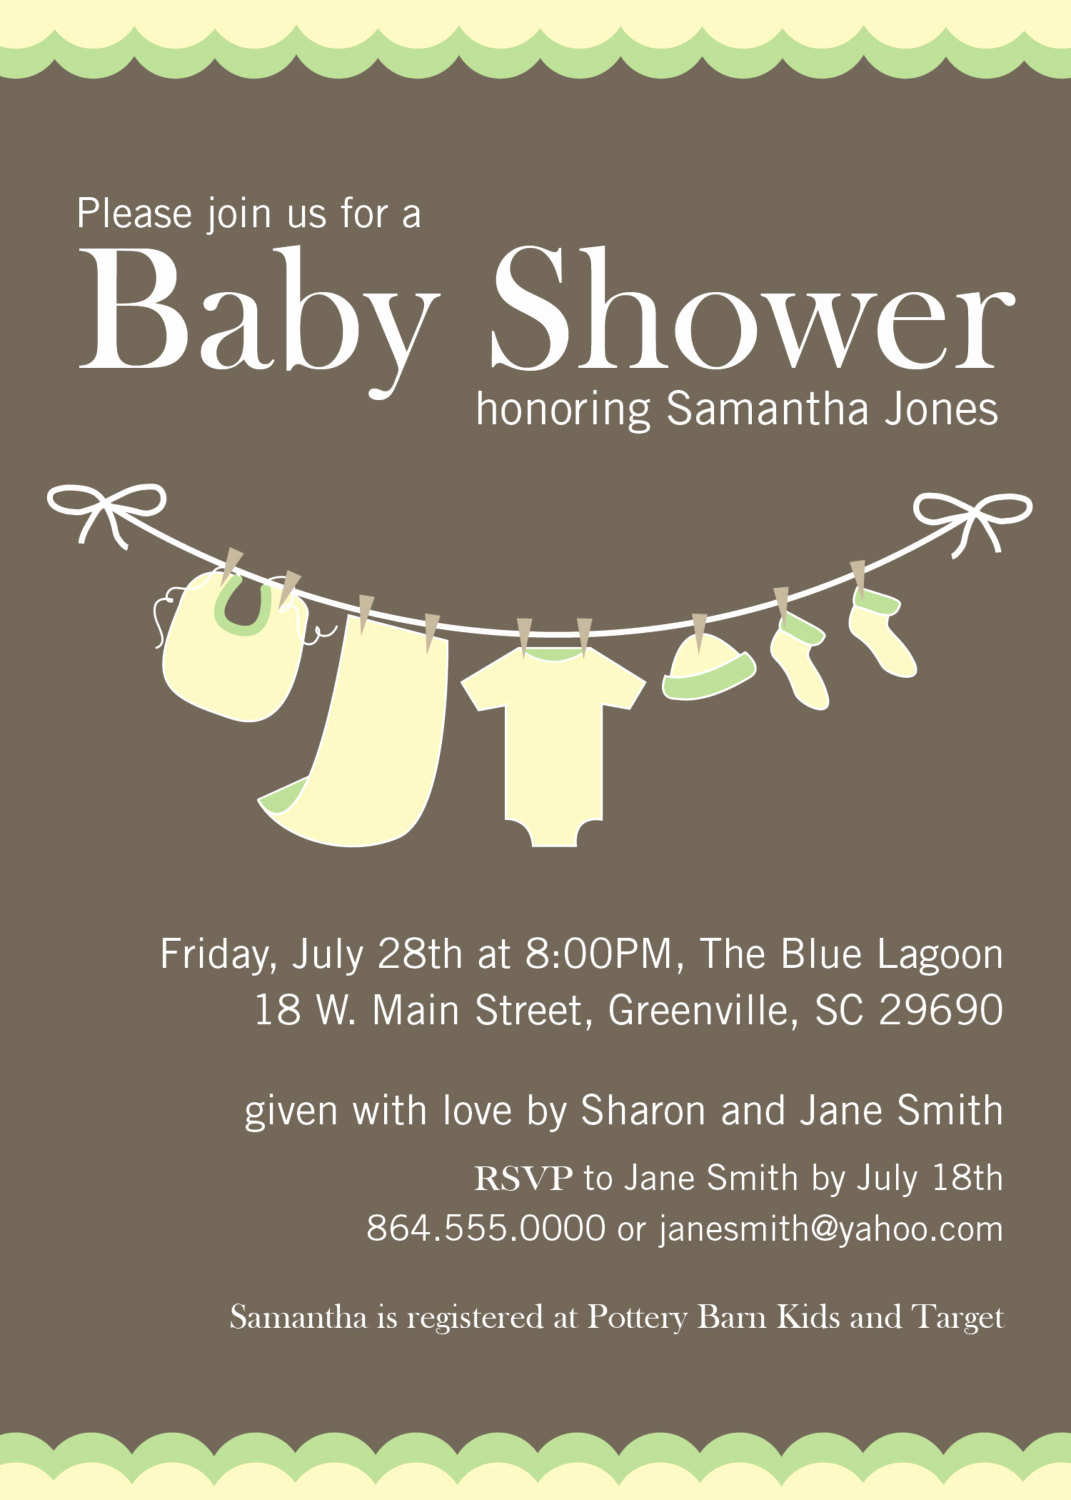 Baby Shower Invitation Wording Best Of Baby Shower Invitation Printable Yellow Green by Ohcreative E